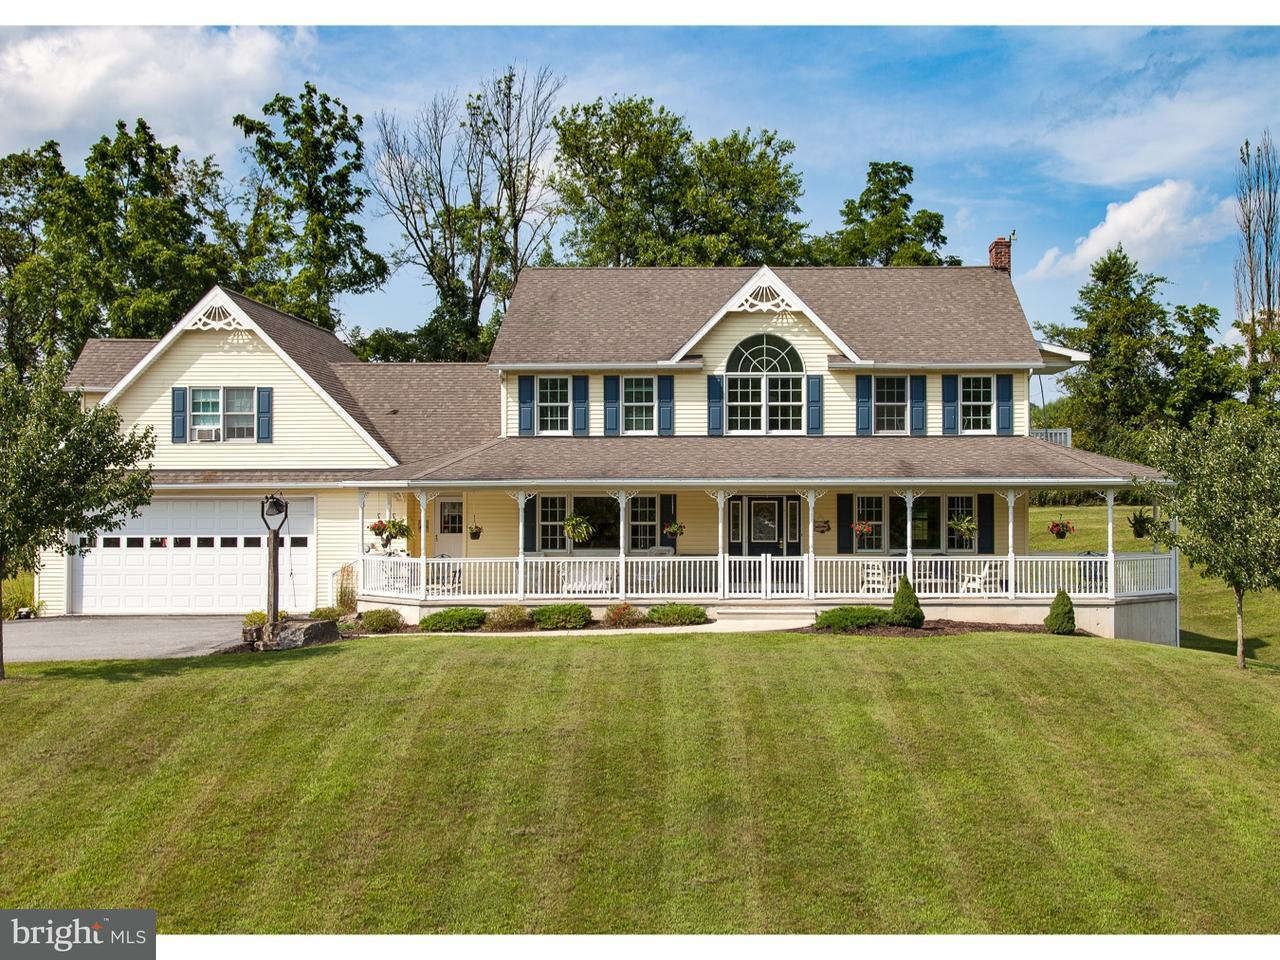 Single Family Home for Sale at 211 FARVIEW Road Hamburg, Pennsylvania 19526 United States